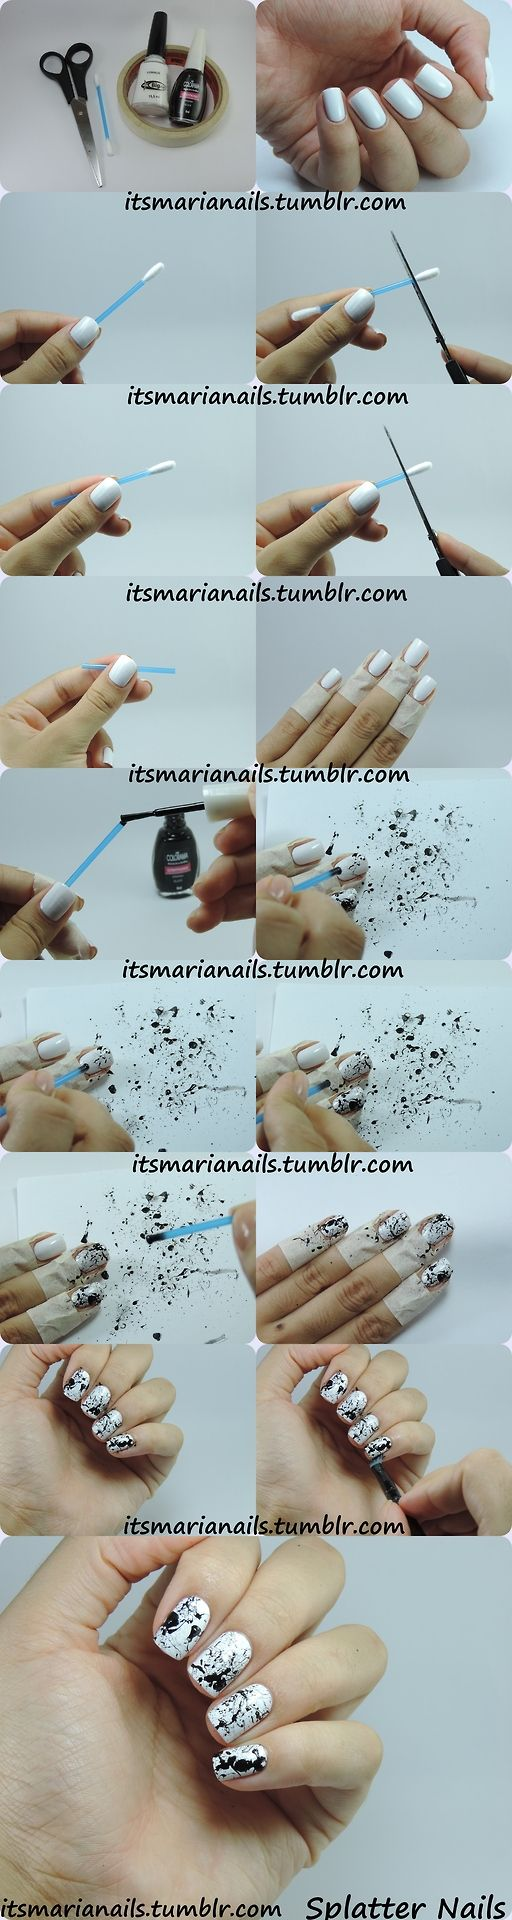 Monochrome Splatter Nail Art Tutorial